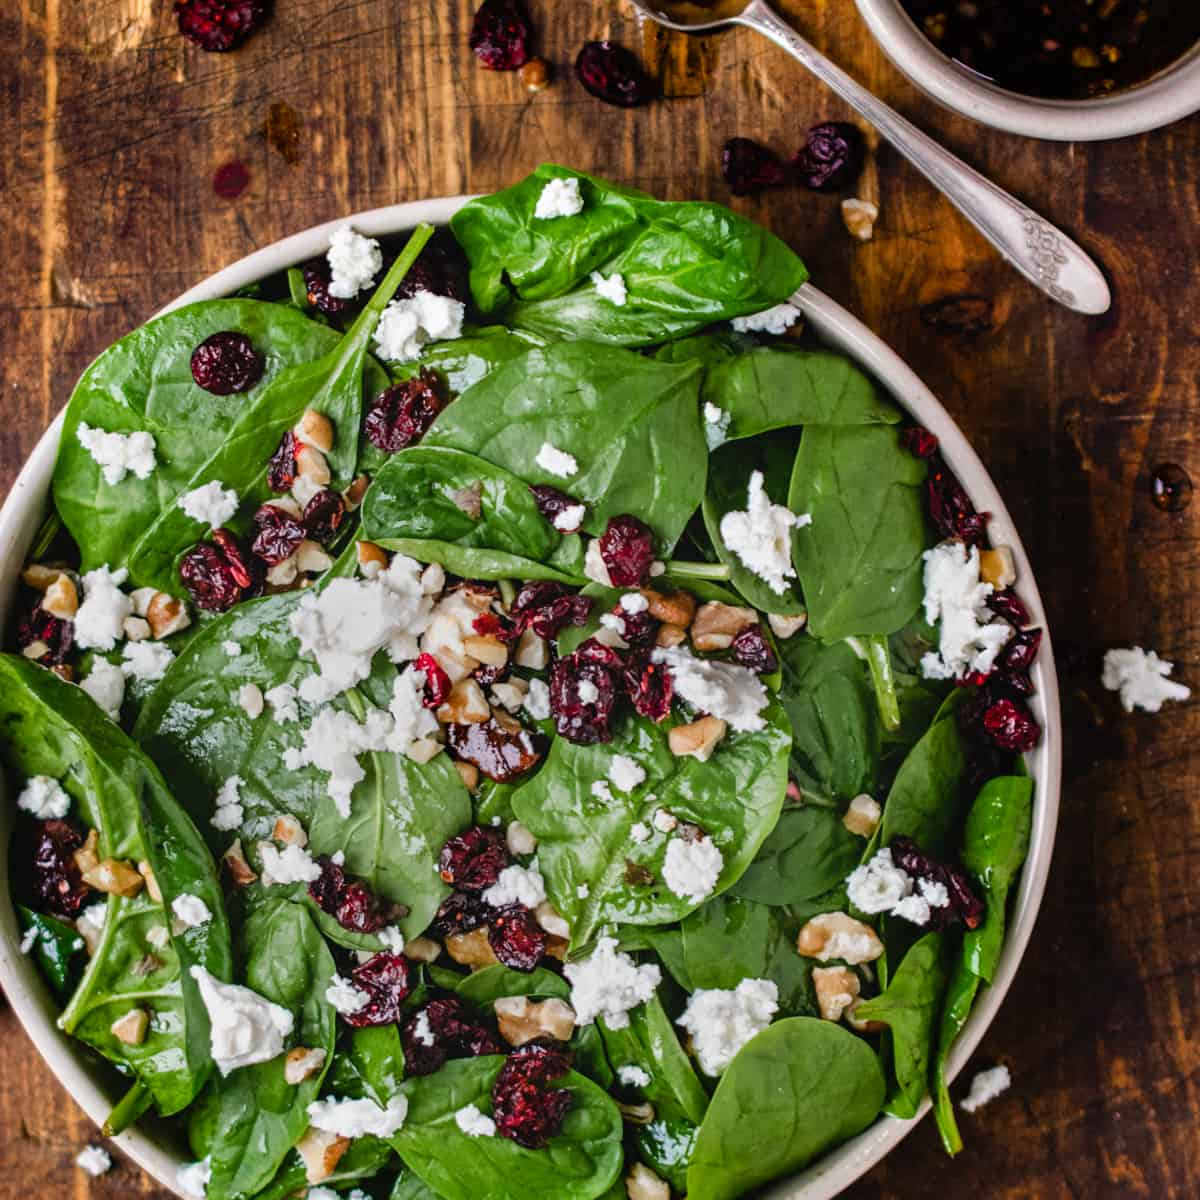 Spinach leaves, dried cranberries, walnut pieces and crumbled cheese in a bowl on wooden backdrop.